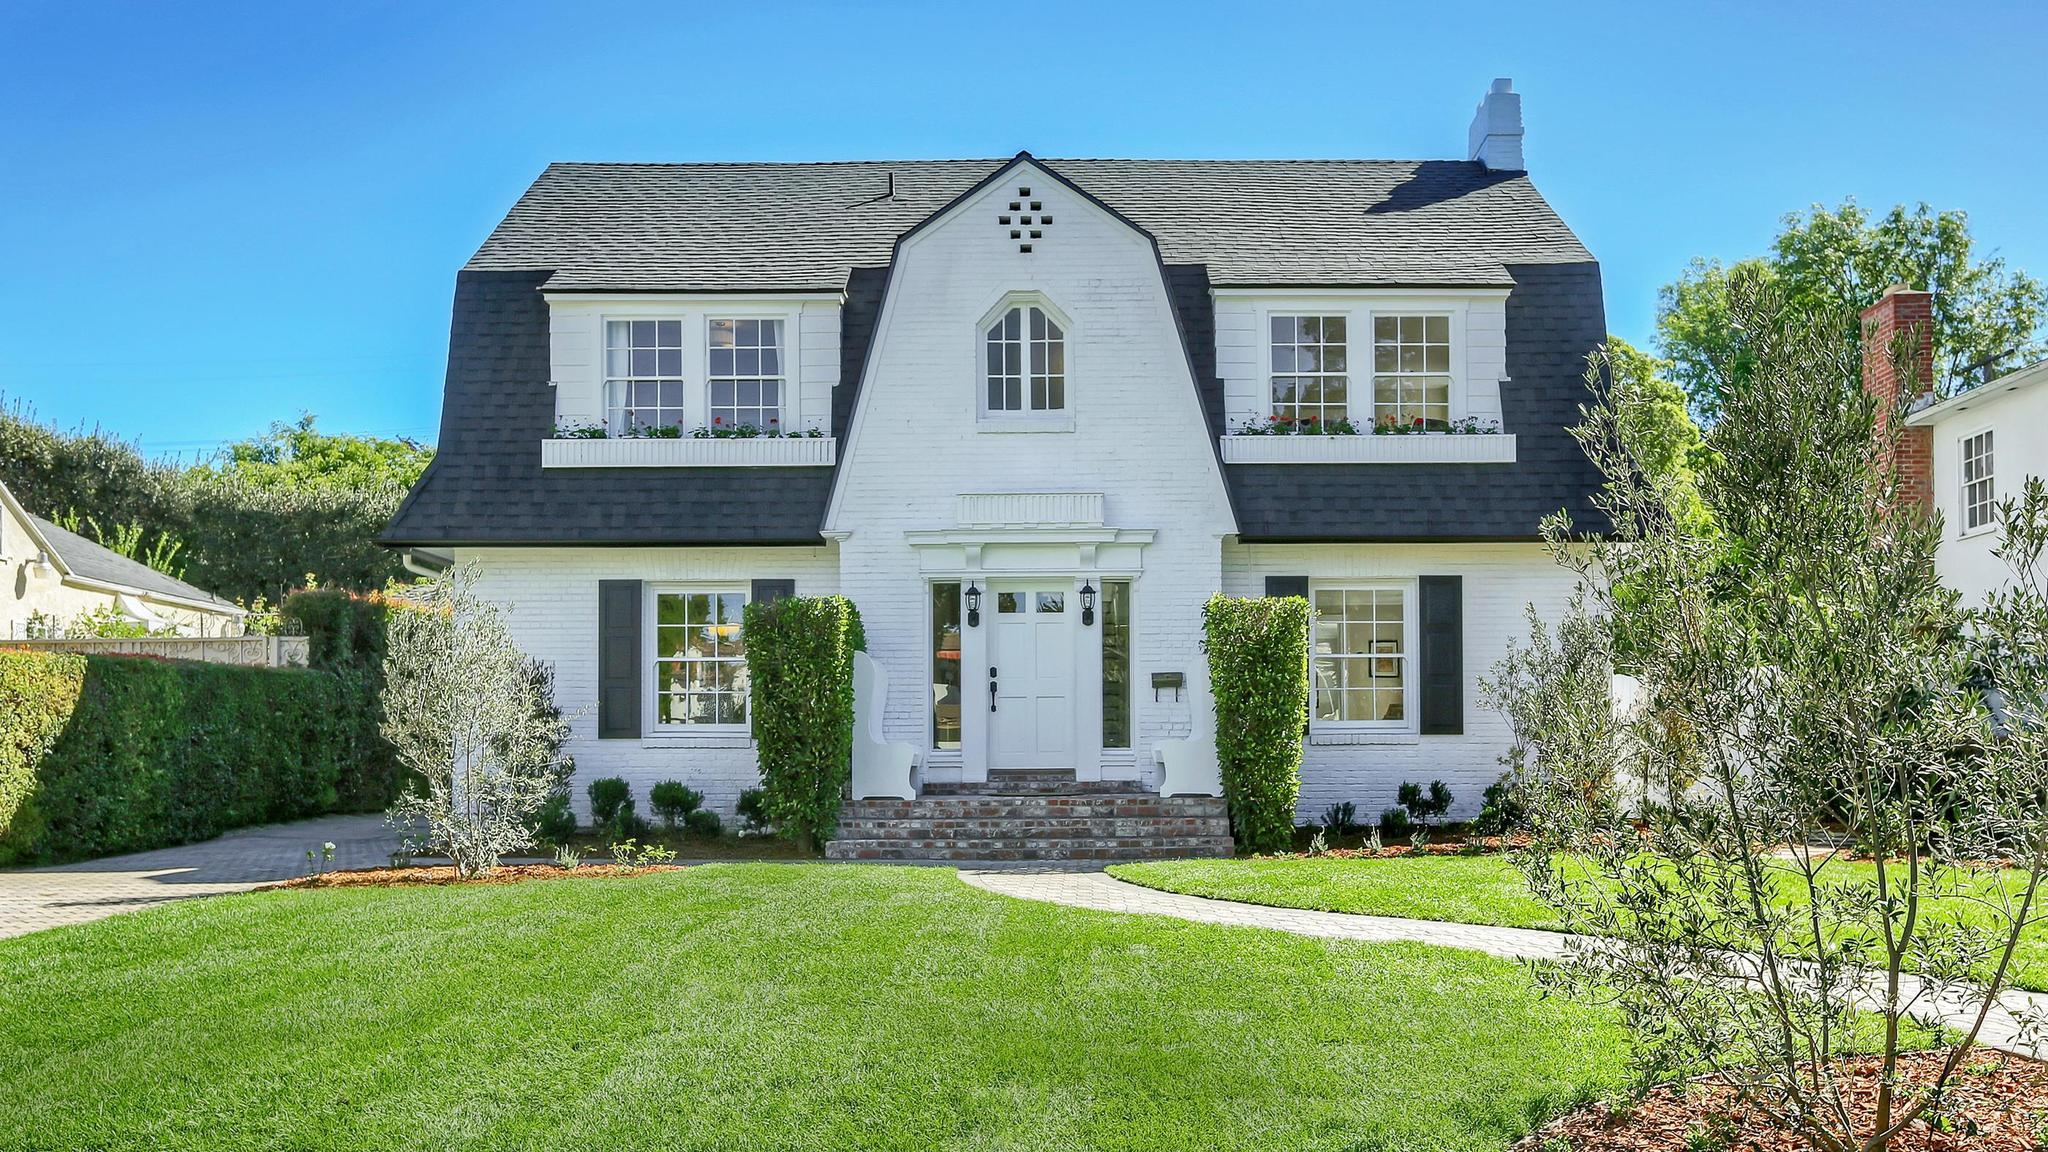 Home of the Day: 1920s Dutch Colonial Revival in Lafayette ...